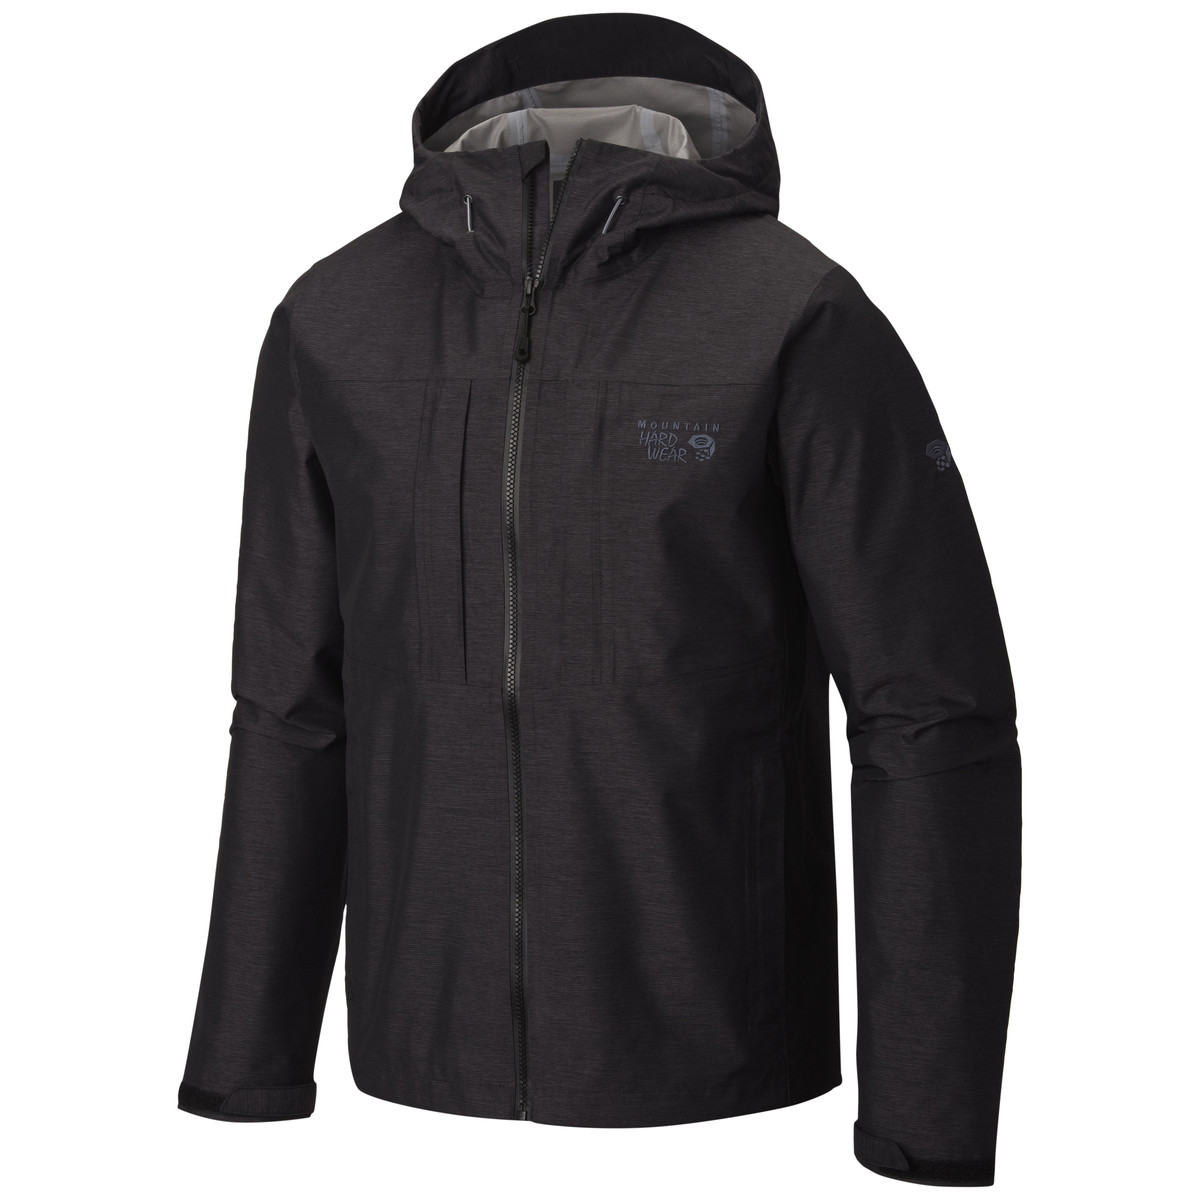 Mountain Hardwear SOMA Plasmic Jacket